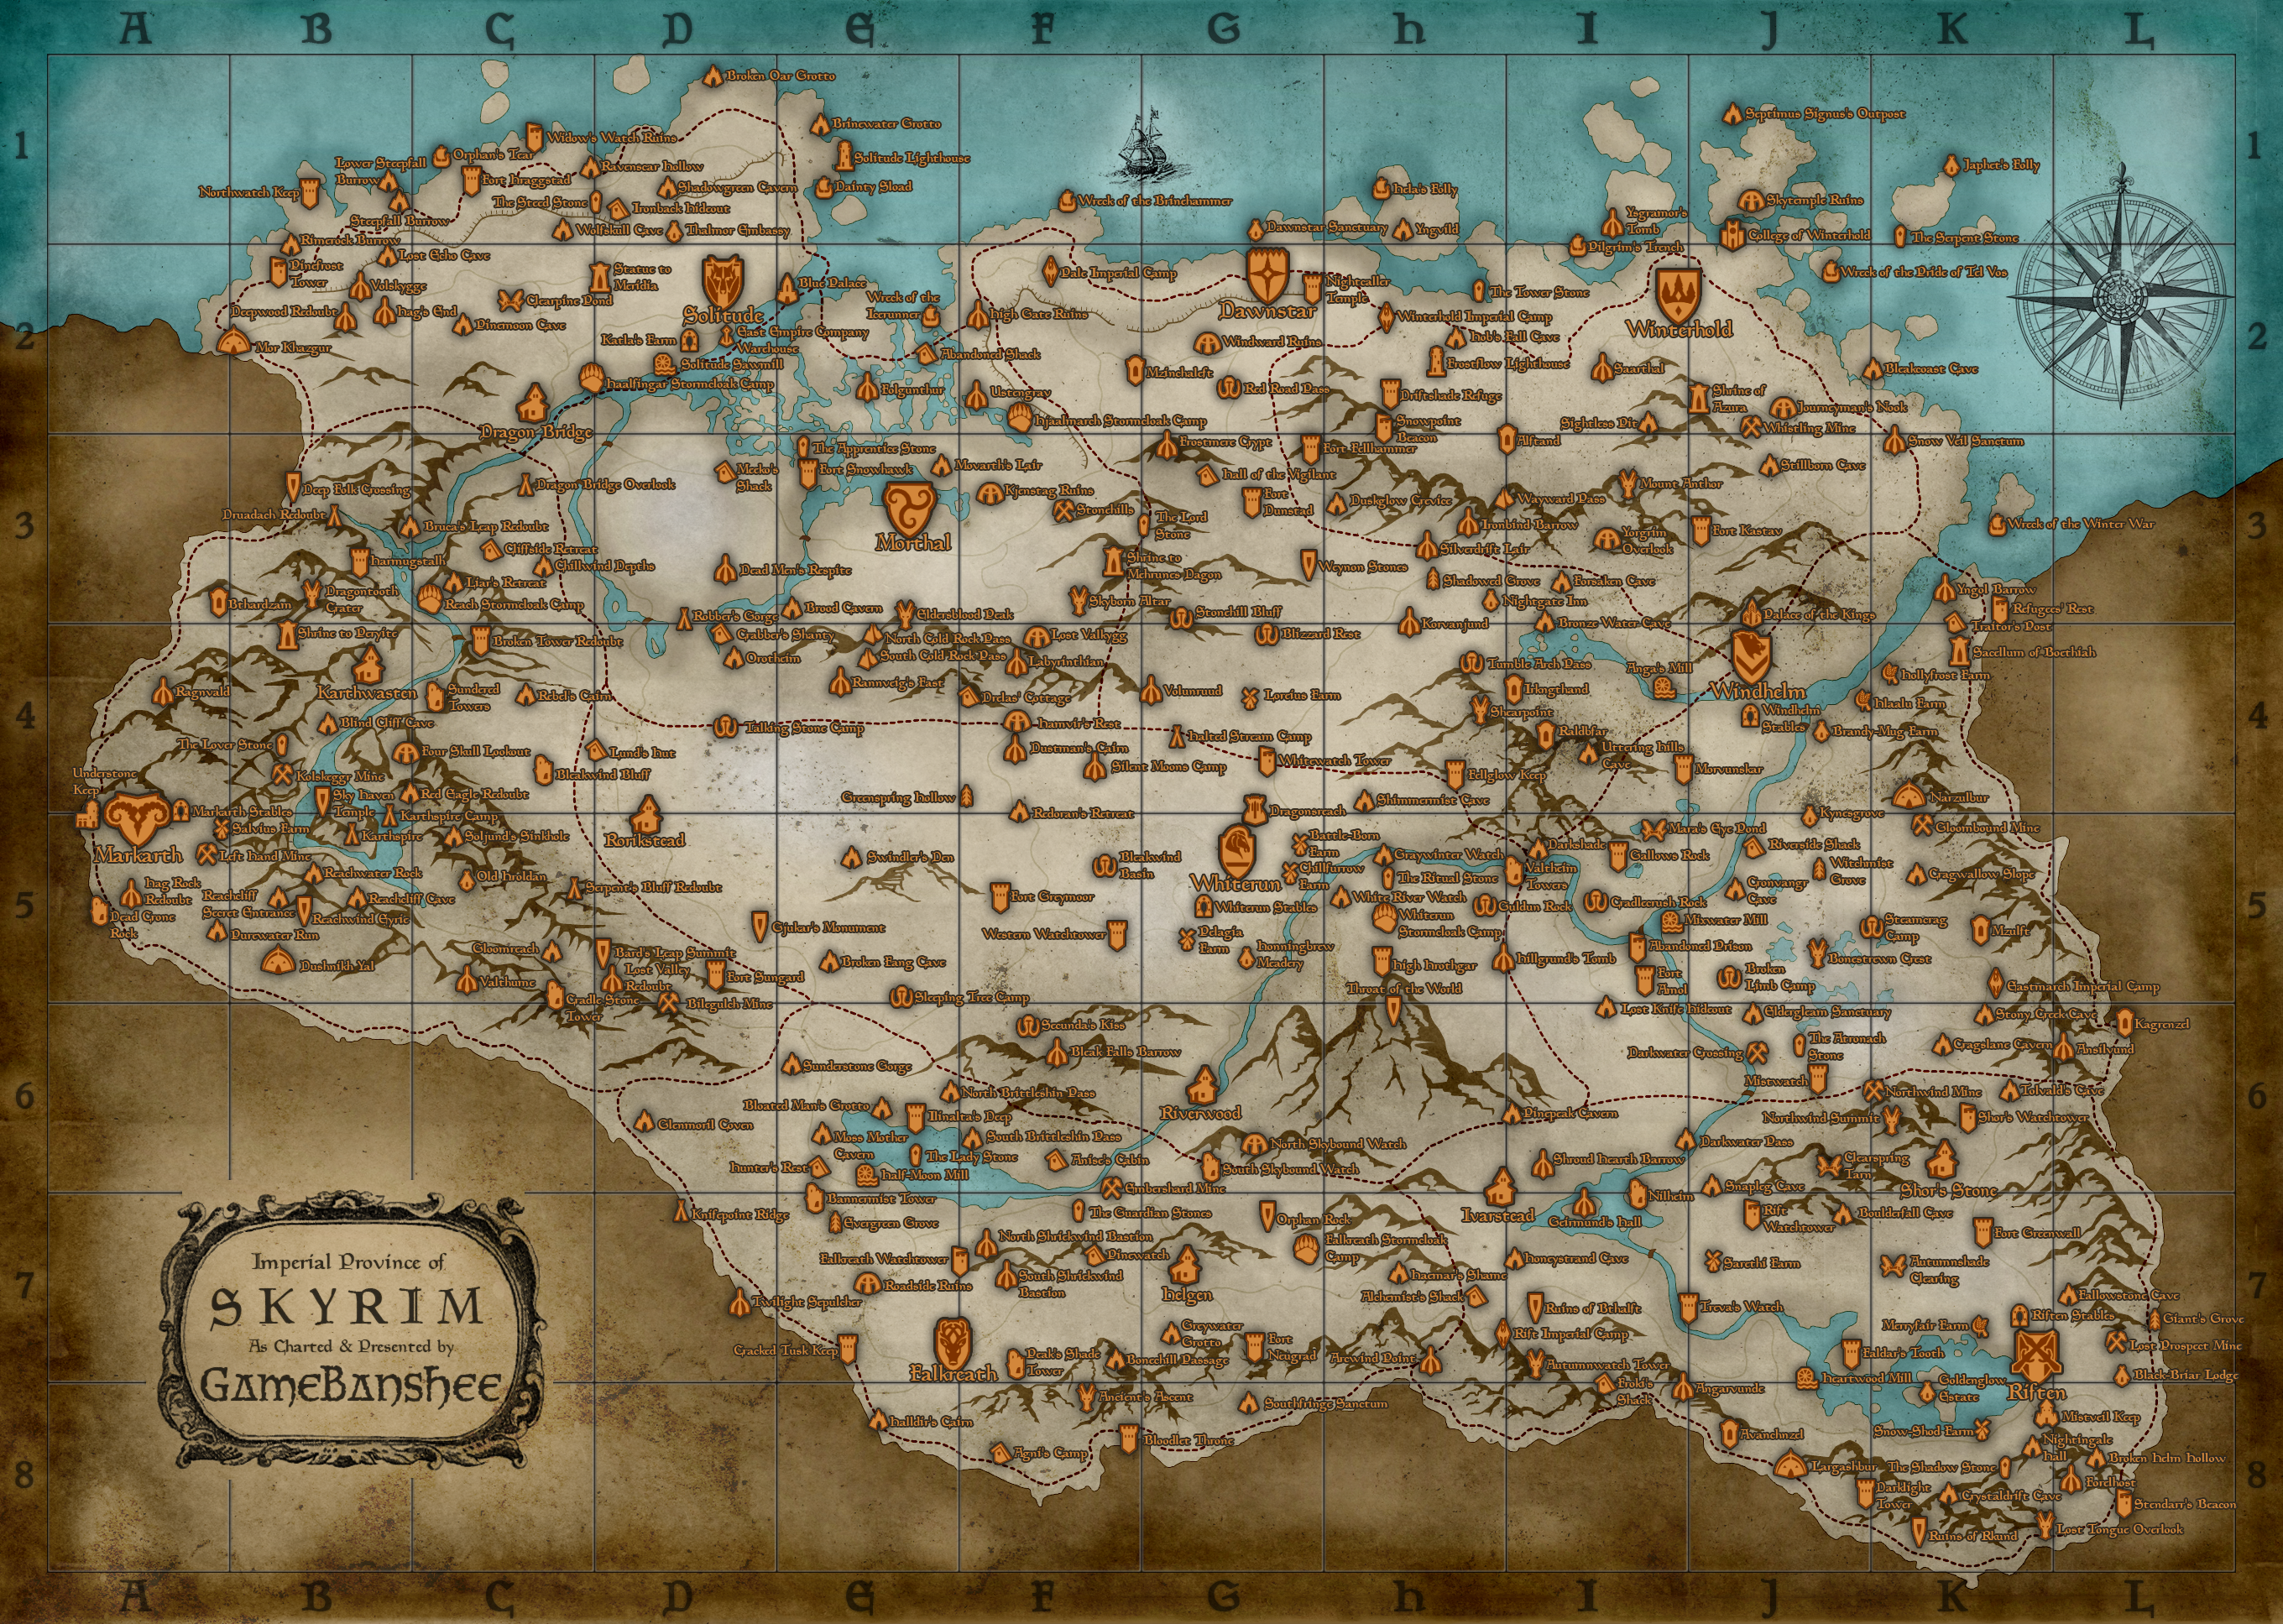 Skyrim Map Legend Map (Skyrim)/Locations | Elder Scrolls | FANDOM powered by Wikia